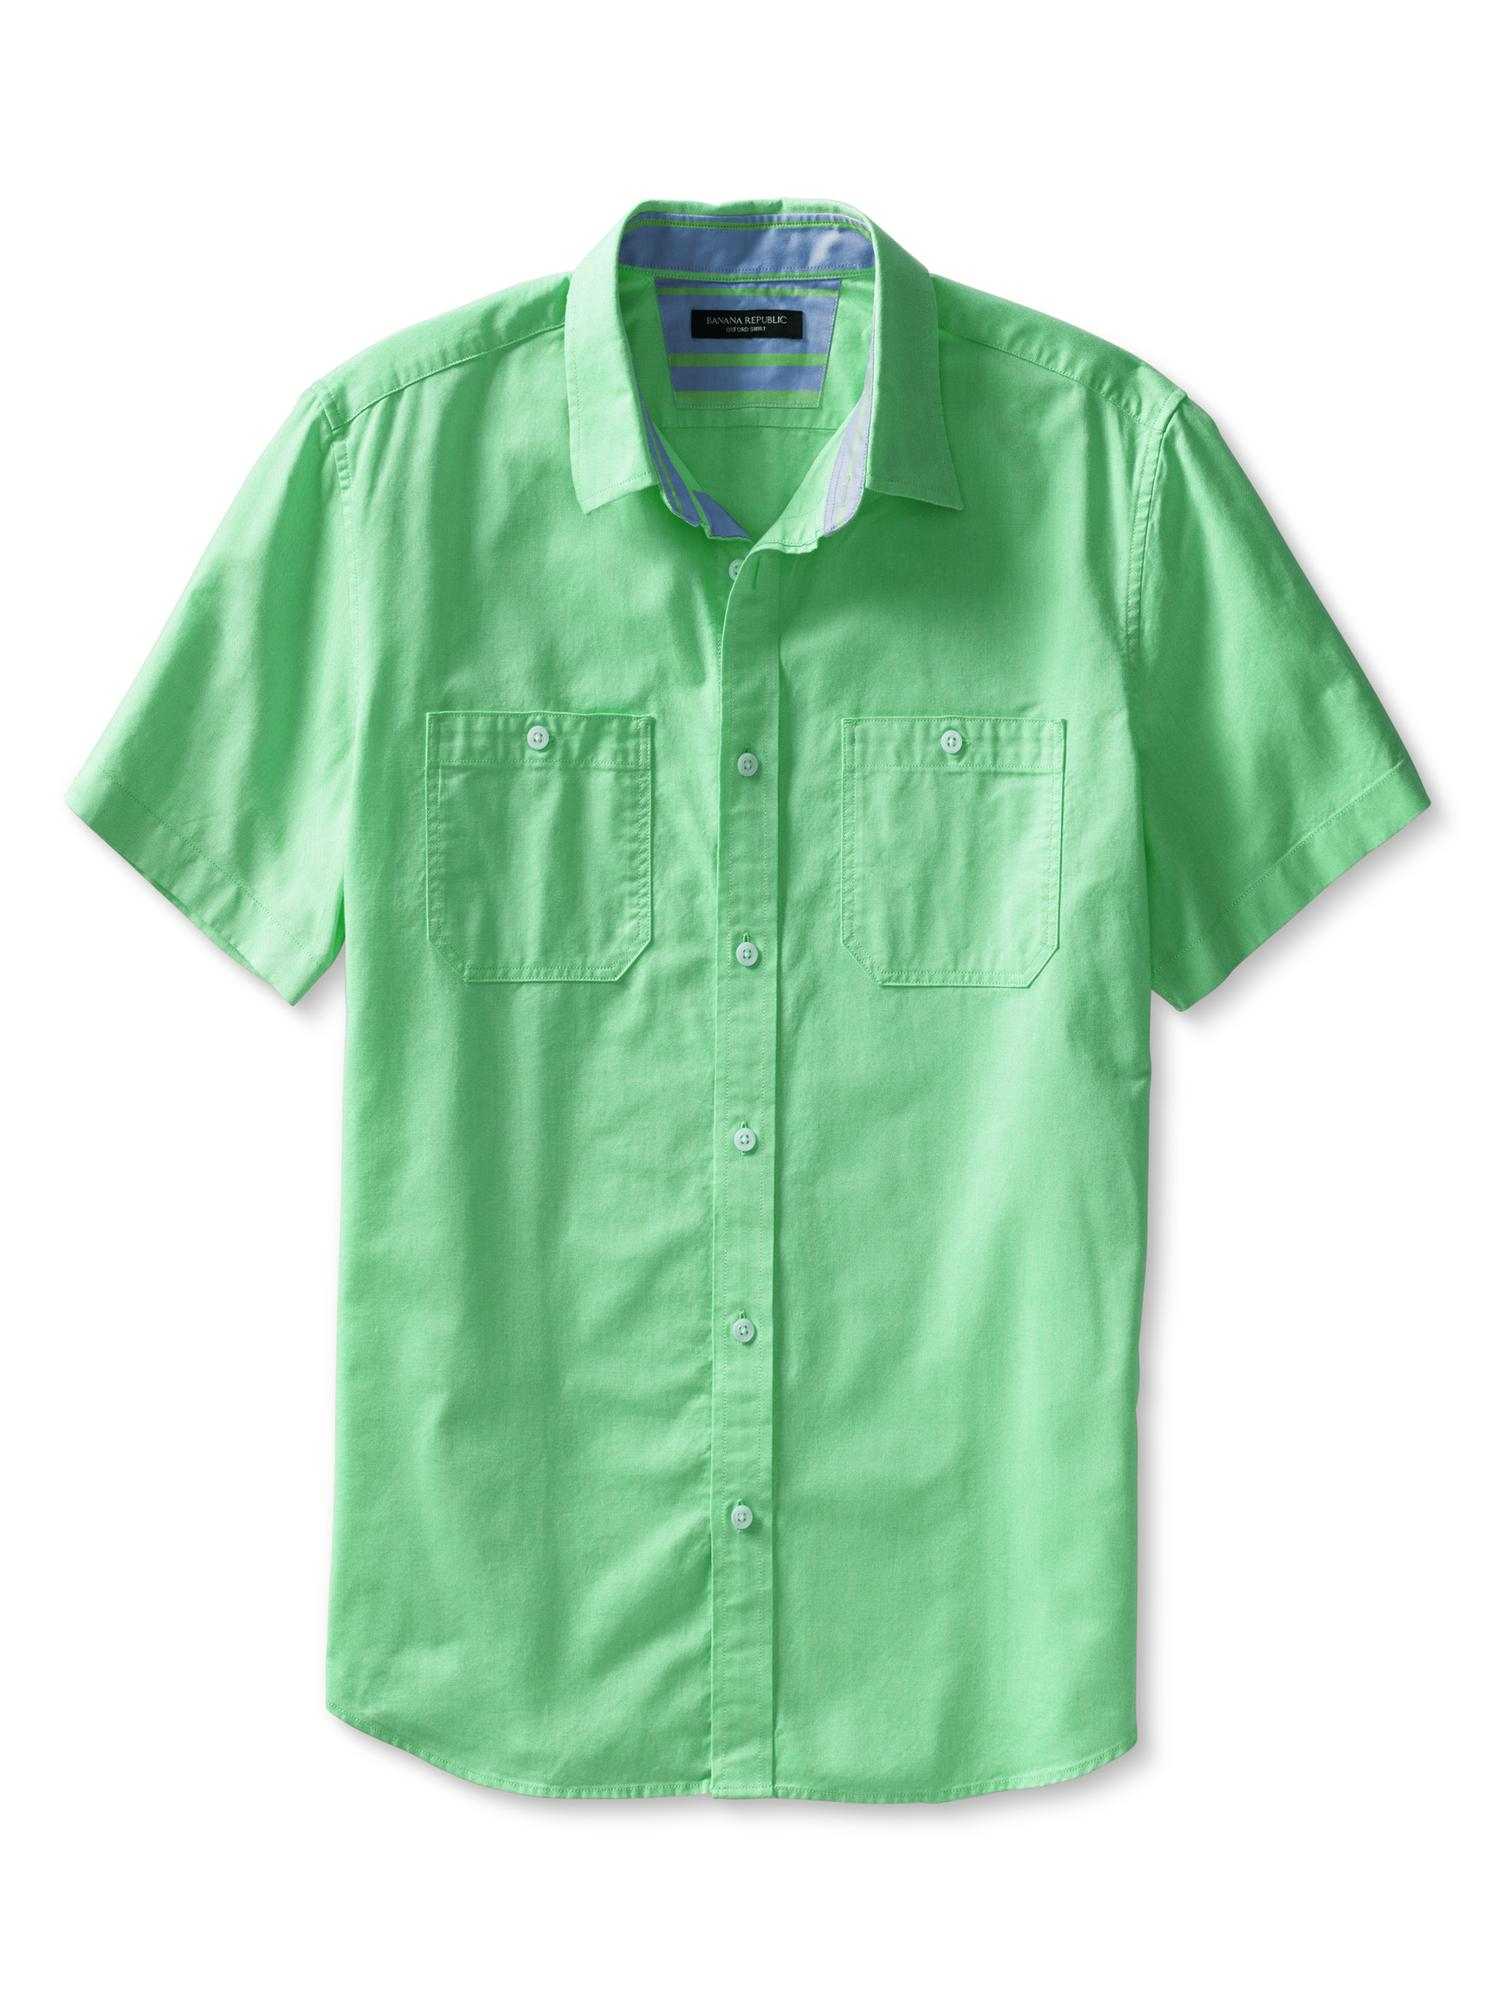 Ralph lauren mens polo shirt short sleeve color green for Mint color polo shirt